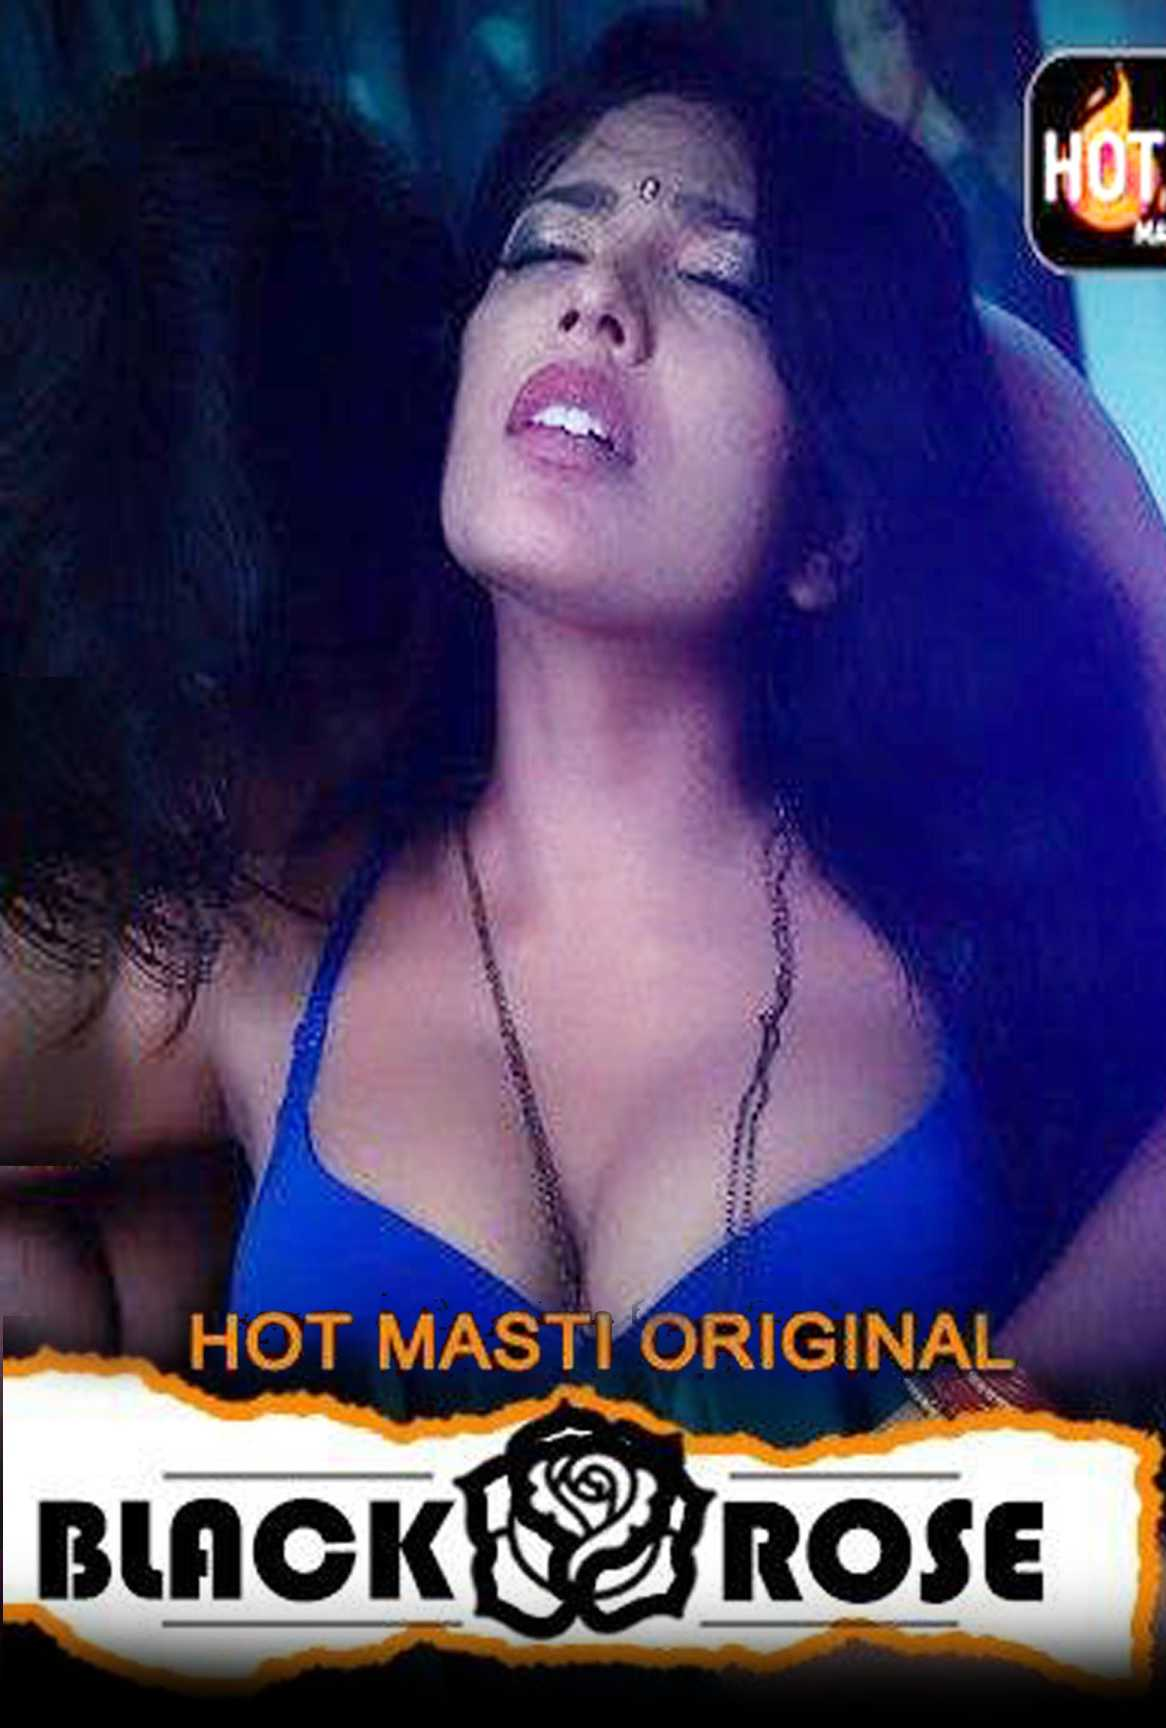 18+ Black Rose 2020 S01E02 Hindi HotMasti Original Web Series 720p HDRip 160MB Watch Online